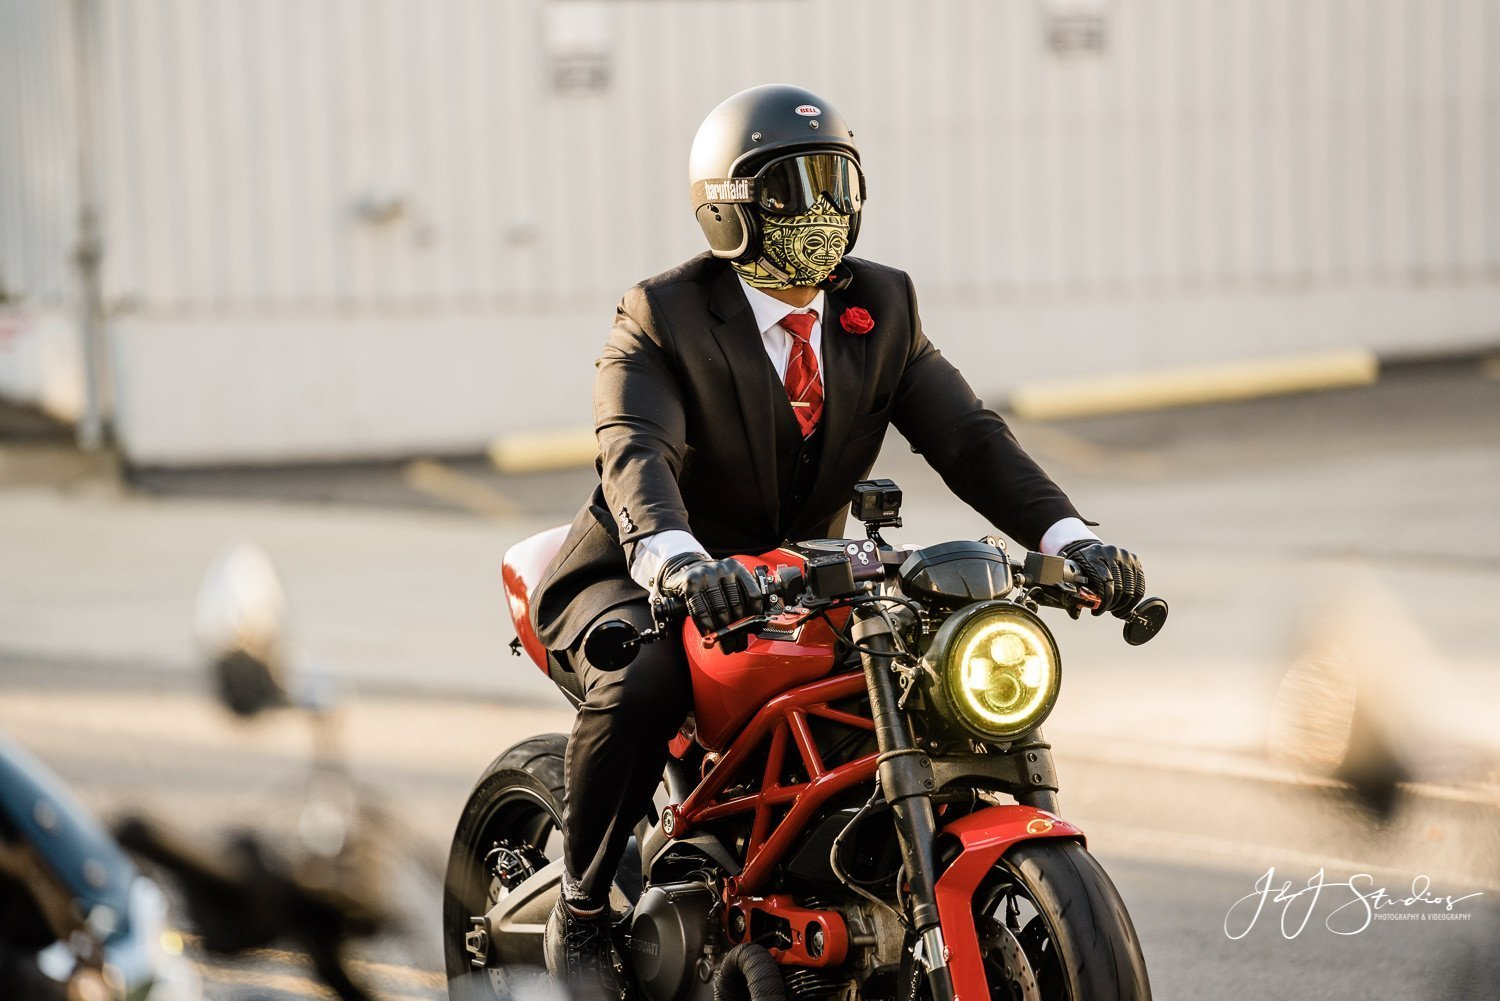 man in suit, helmet, gloves and red tie on red motorcycle